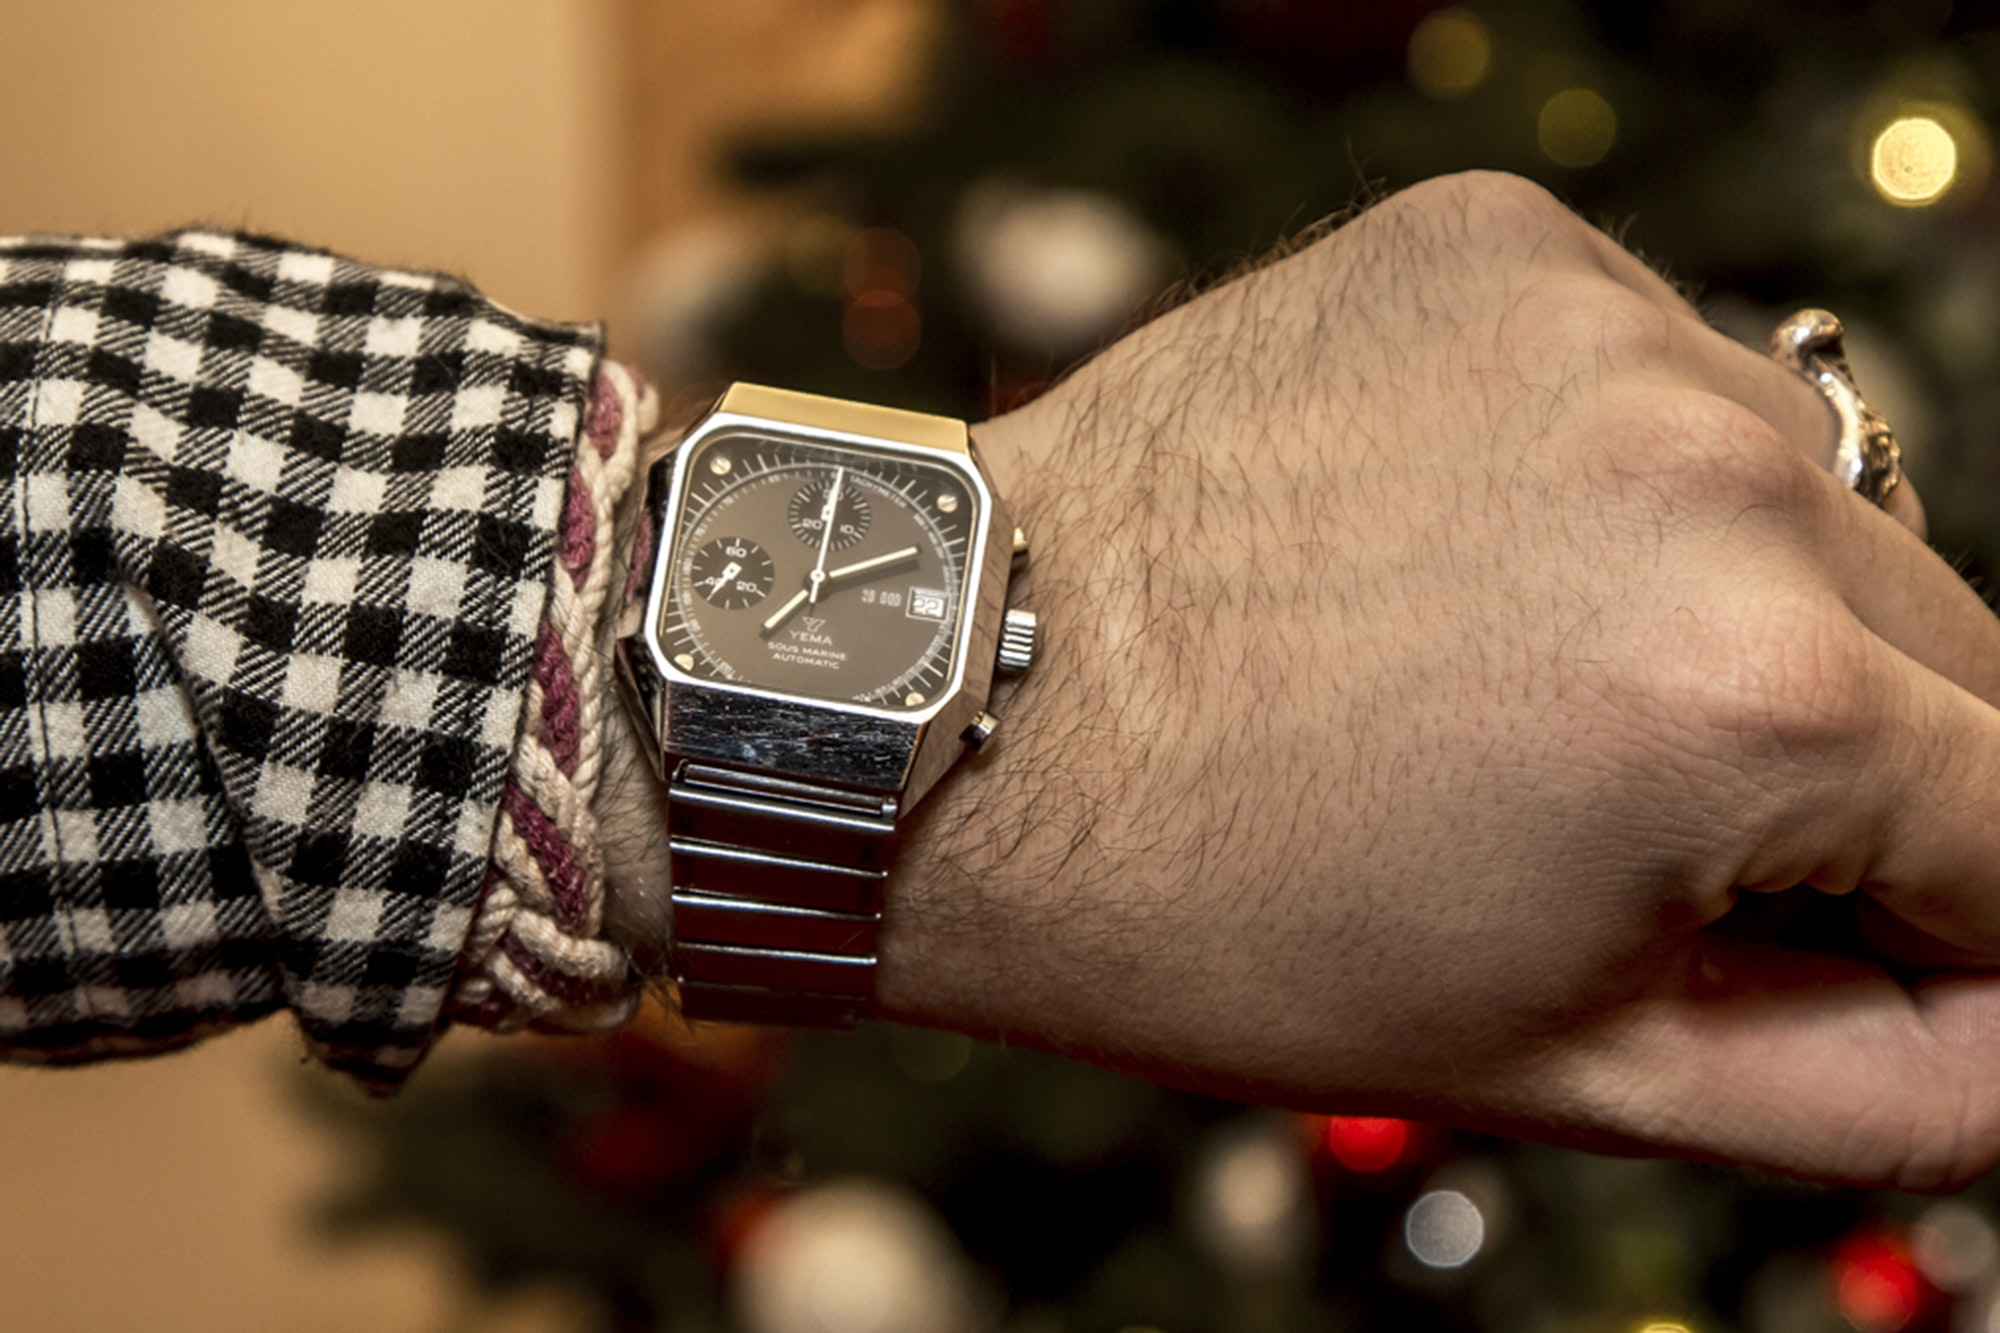 Photo Report: HODINKEE Hosts A Collector Get-Together At The Wempe Boutique In London Photo Report: HODINKEE Hosts A Collector Get-Together At The Wempe Boutique In London fffff